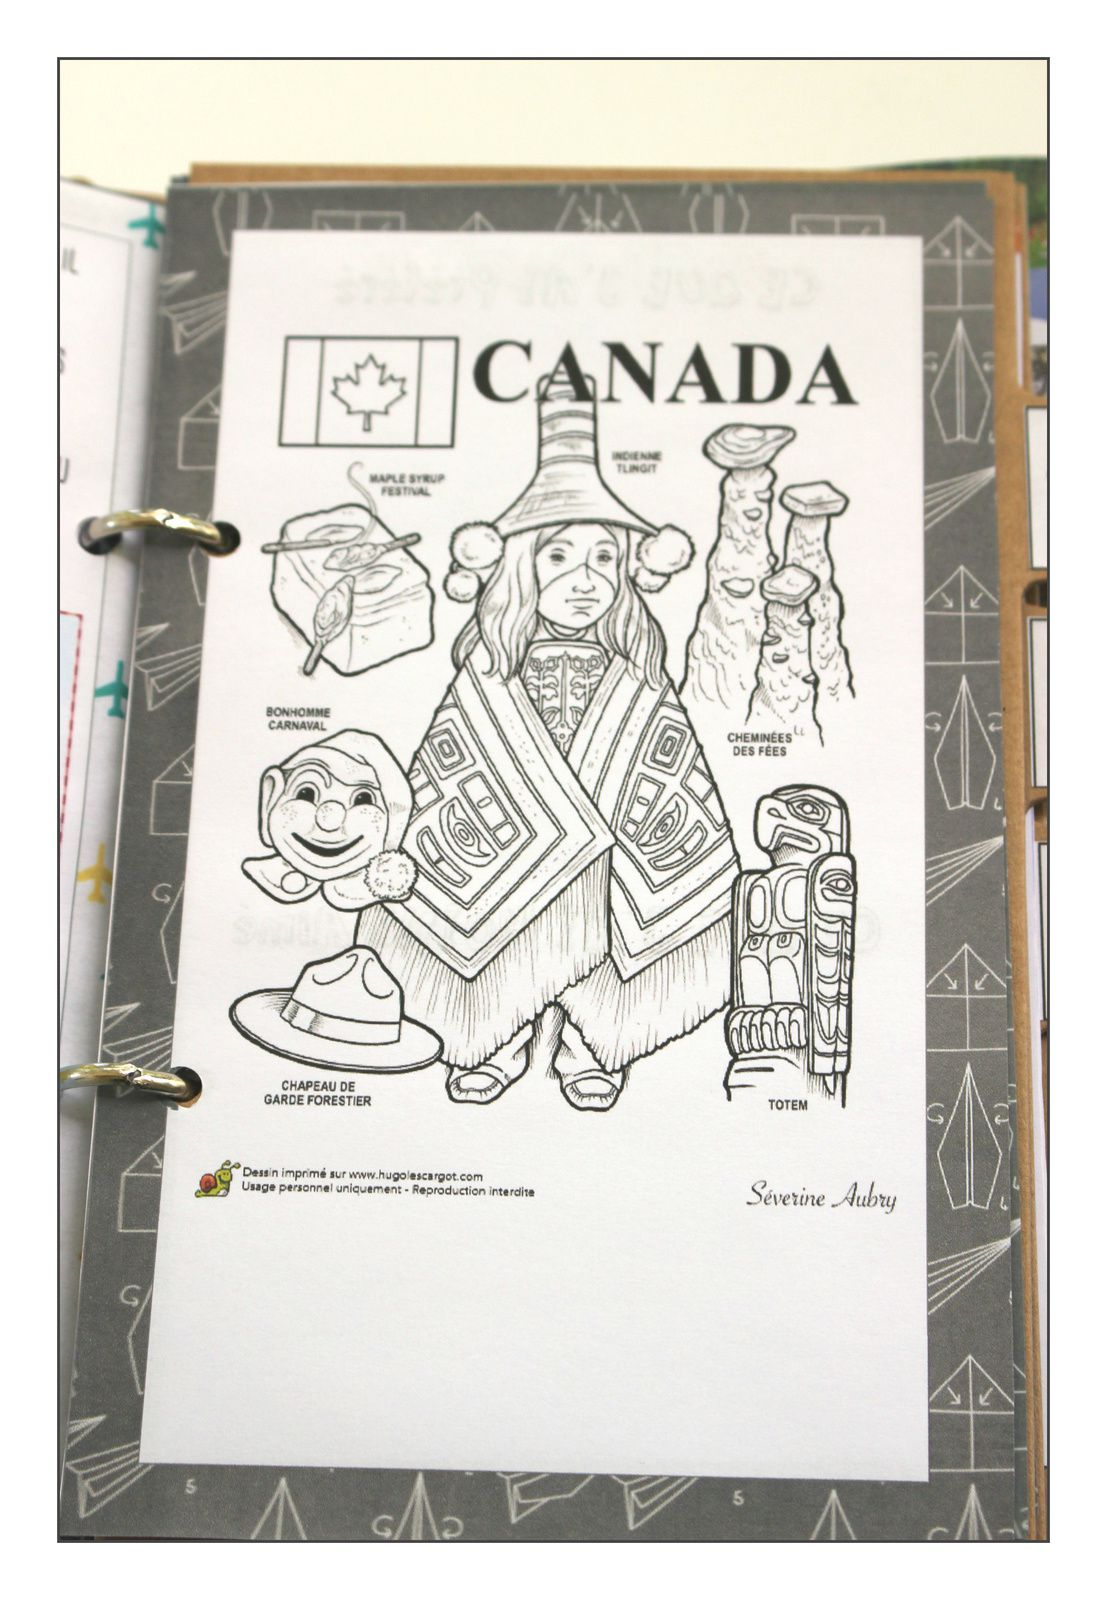 Carnets de voyage version road trip canadien